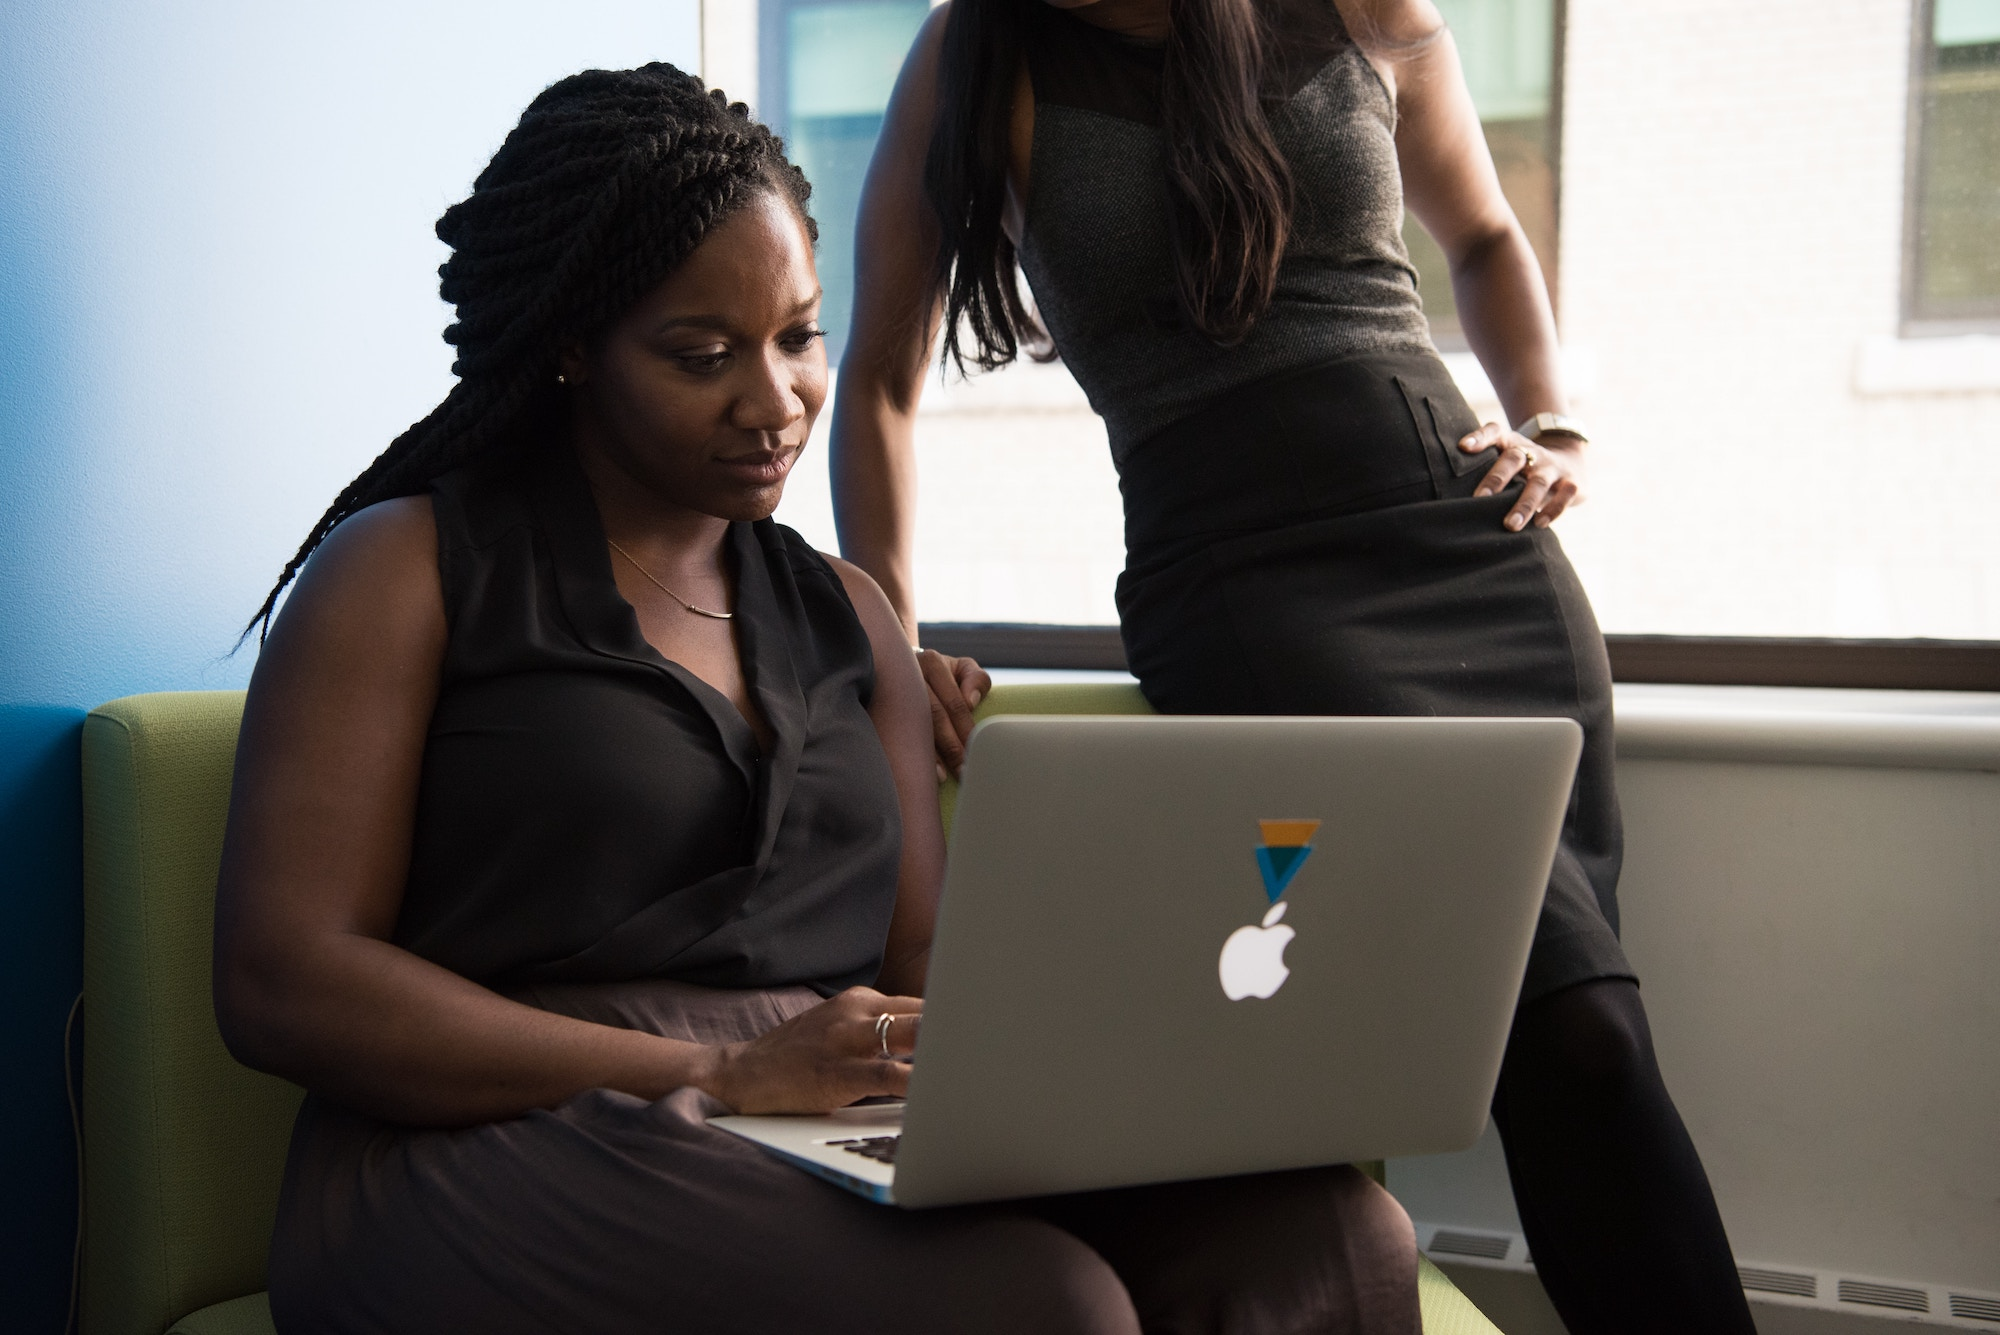 Black woman in a professional black tank top and pleated skirt sits down with a laptop while a woman in a similar outfit looks at the laptop screen